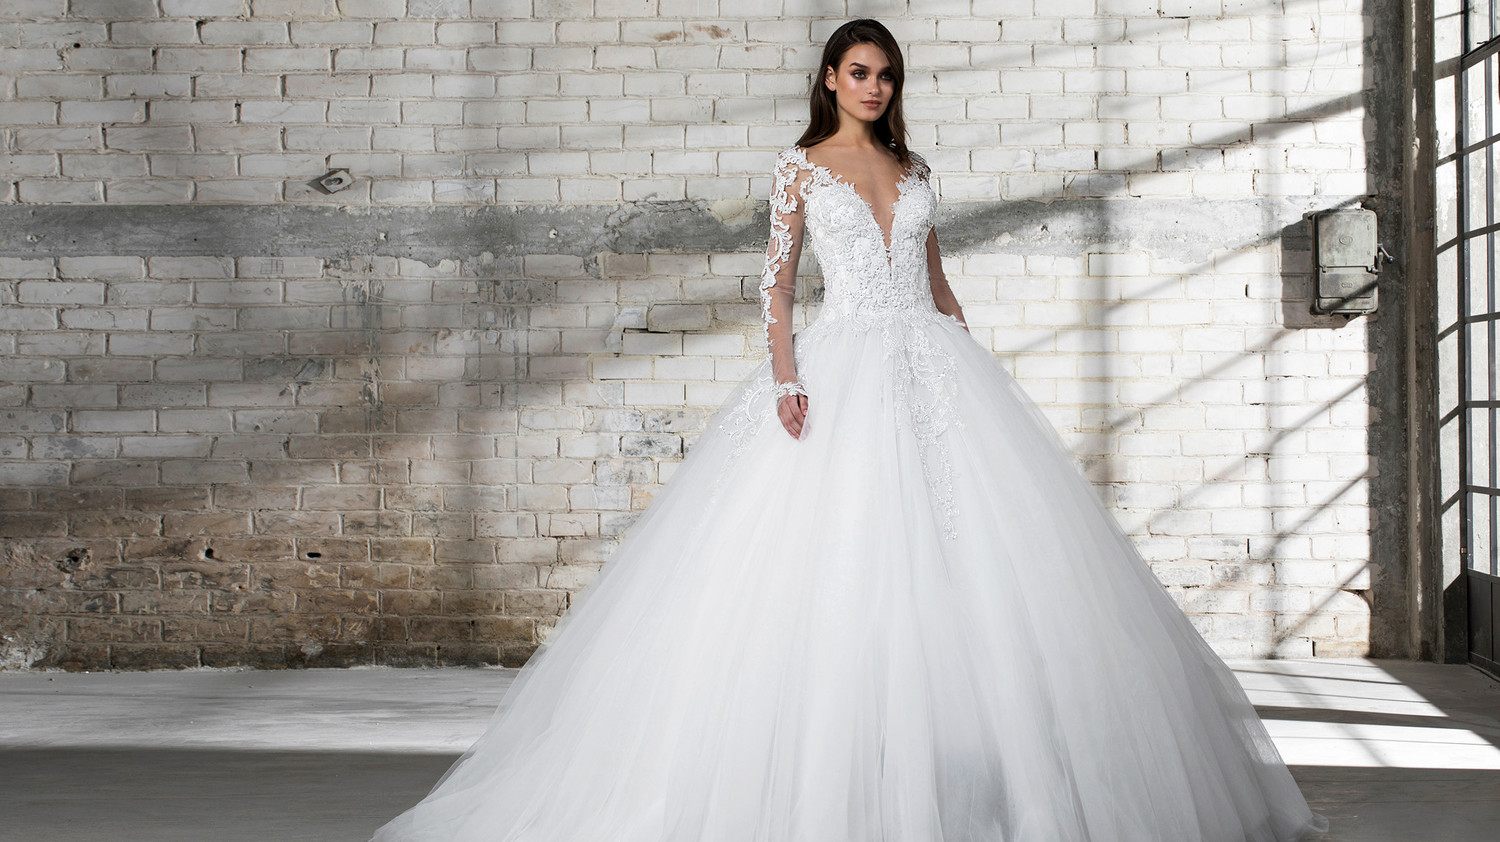 Pnina Tornai for Kleinfeld Spring 2019 Wedding Dress Collection ...